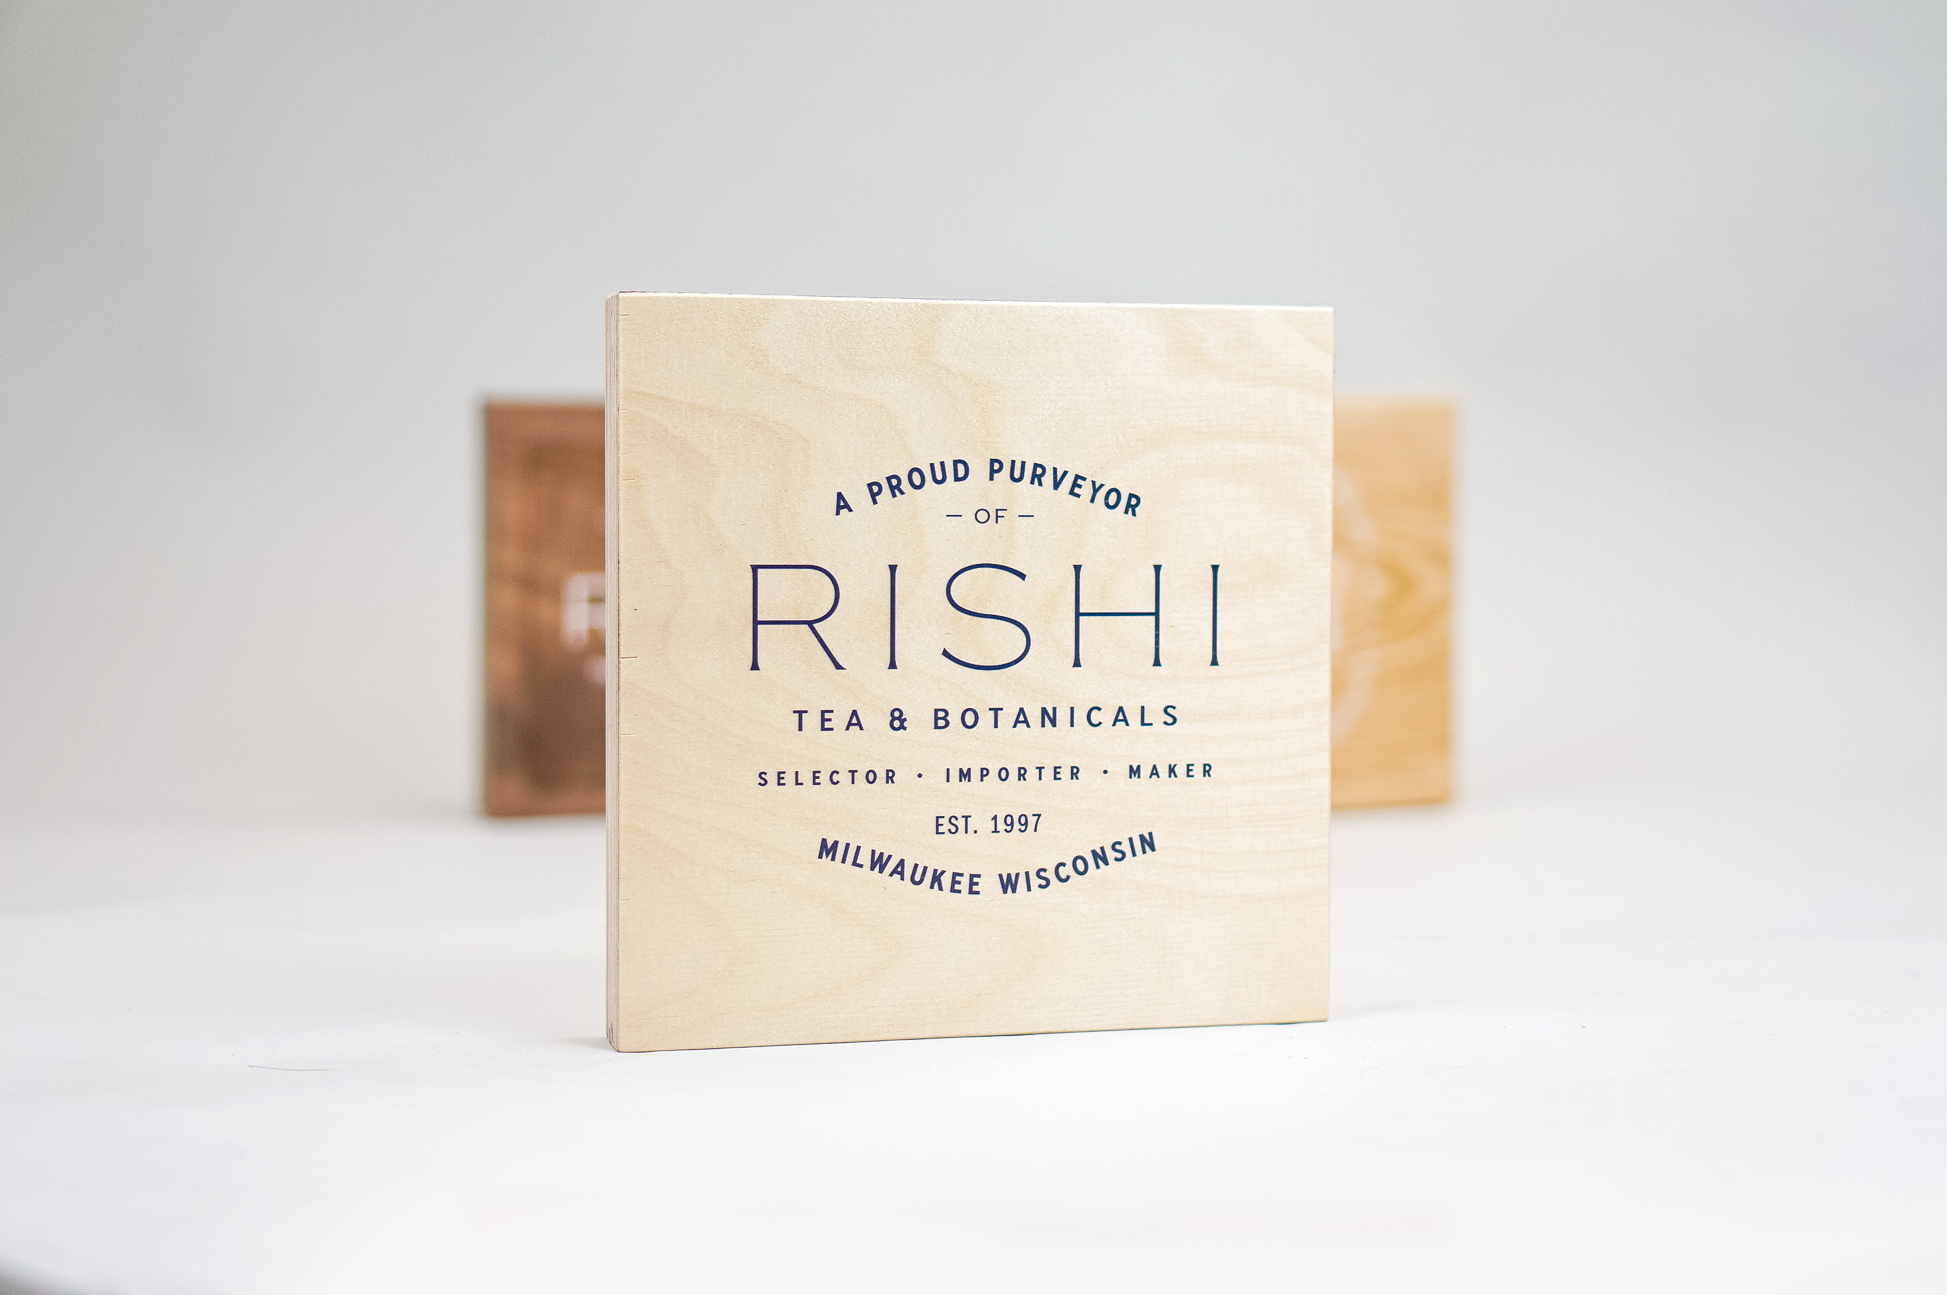 Plywood retail/cafe sign with white artwork for RIshi, a Direct Trade importer of organic teas and botanicals from the very best sources.